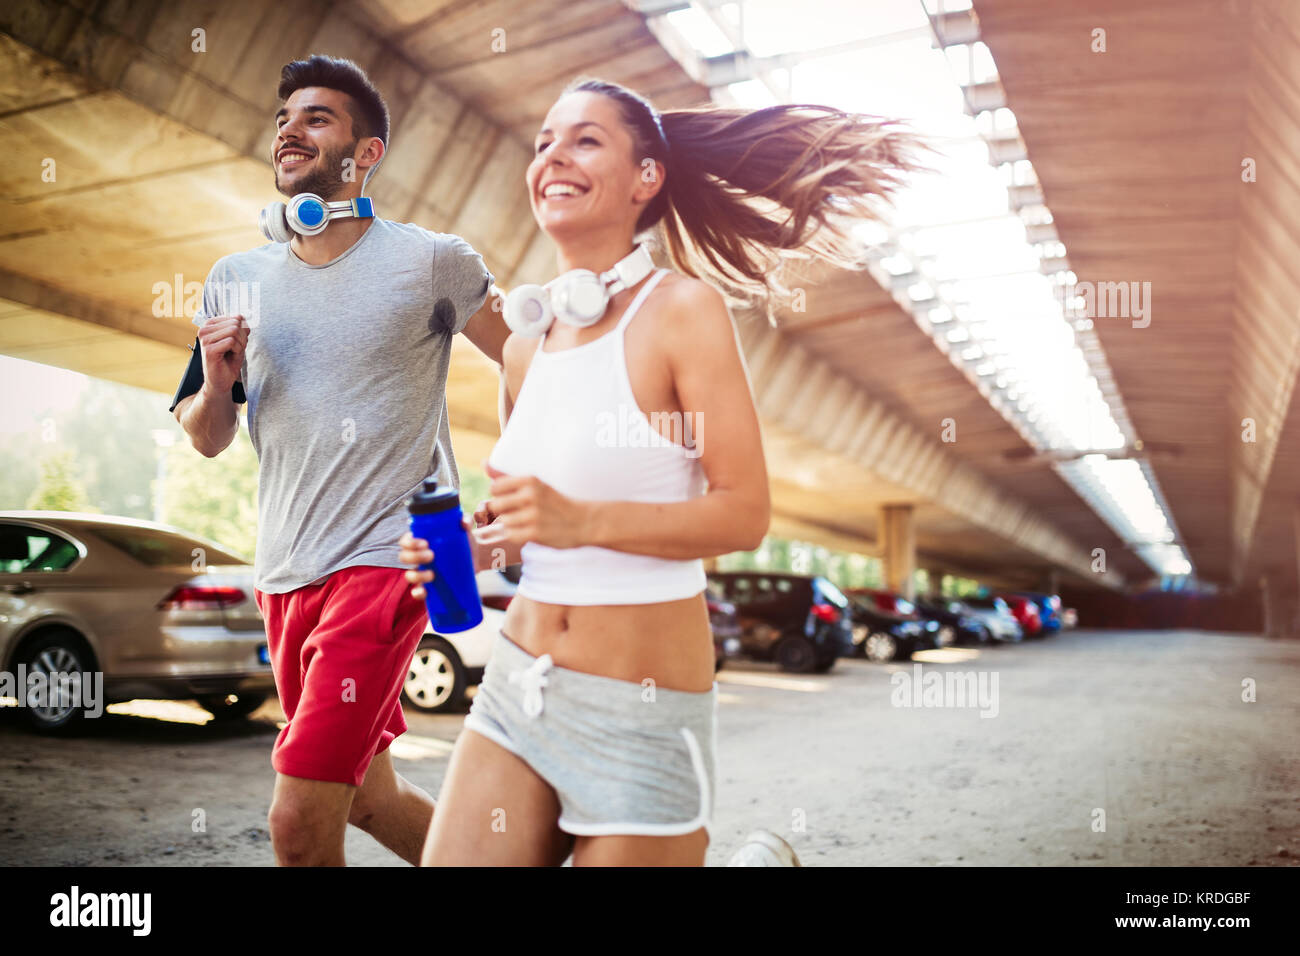 Friends fitness training together outdoors living active healthy - Stock Image